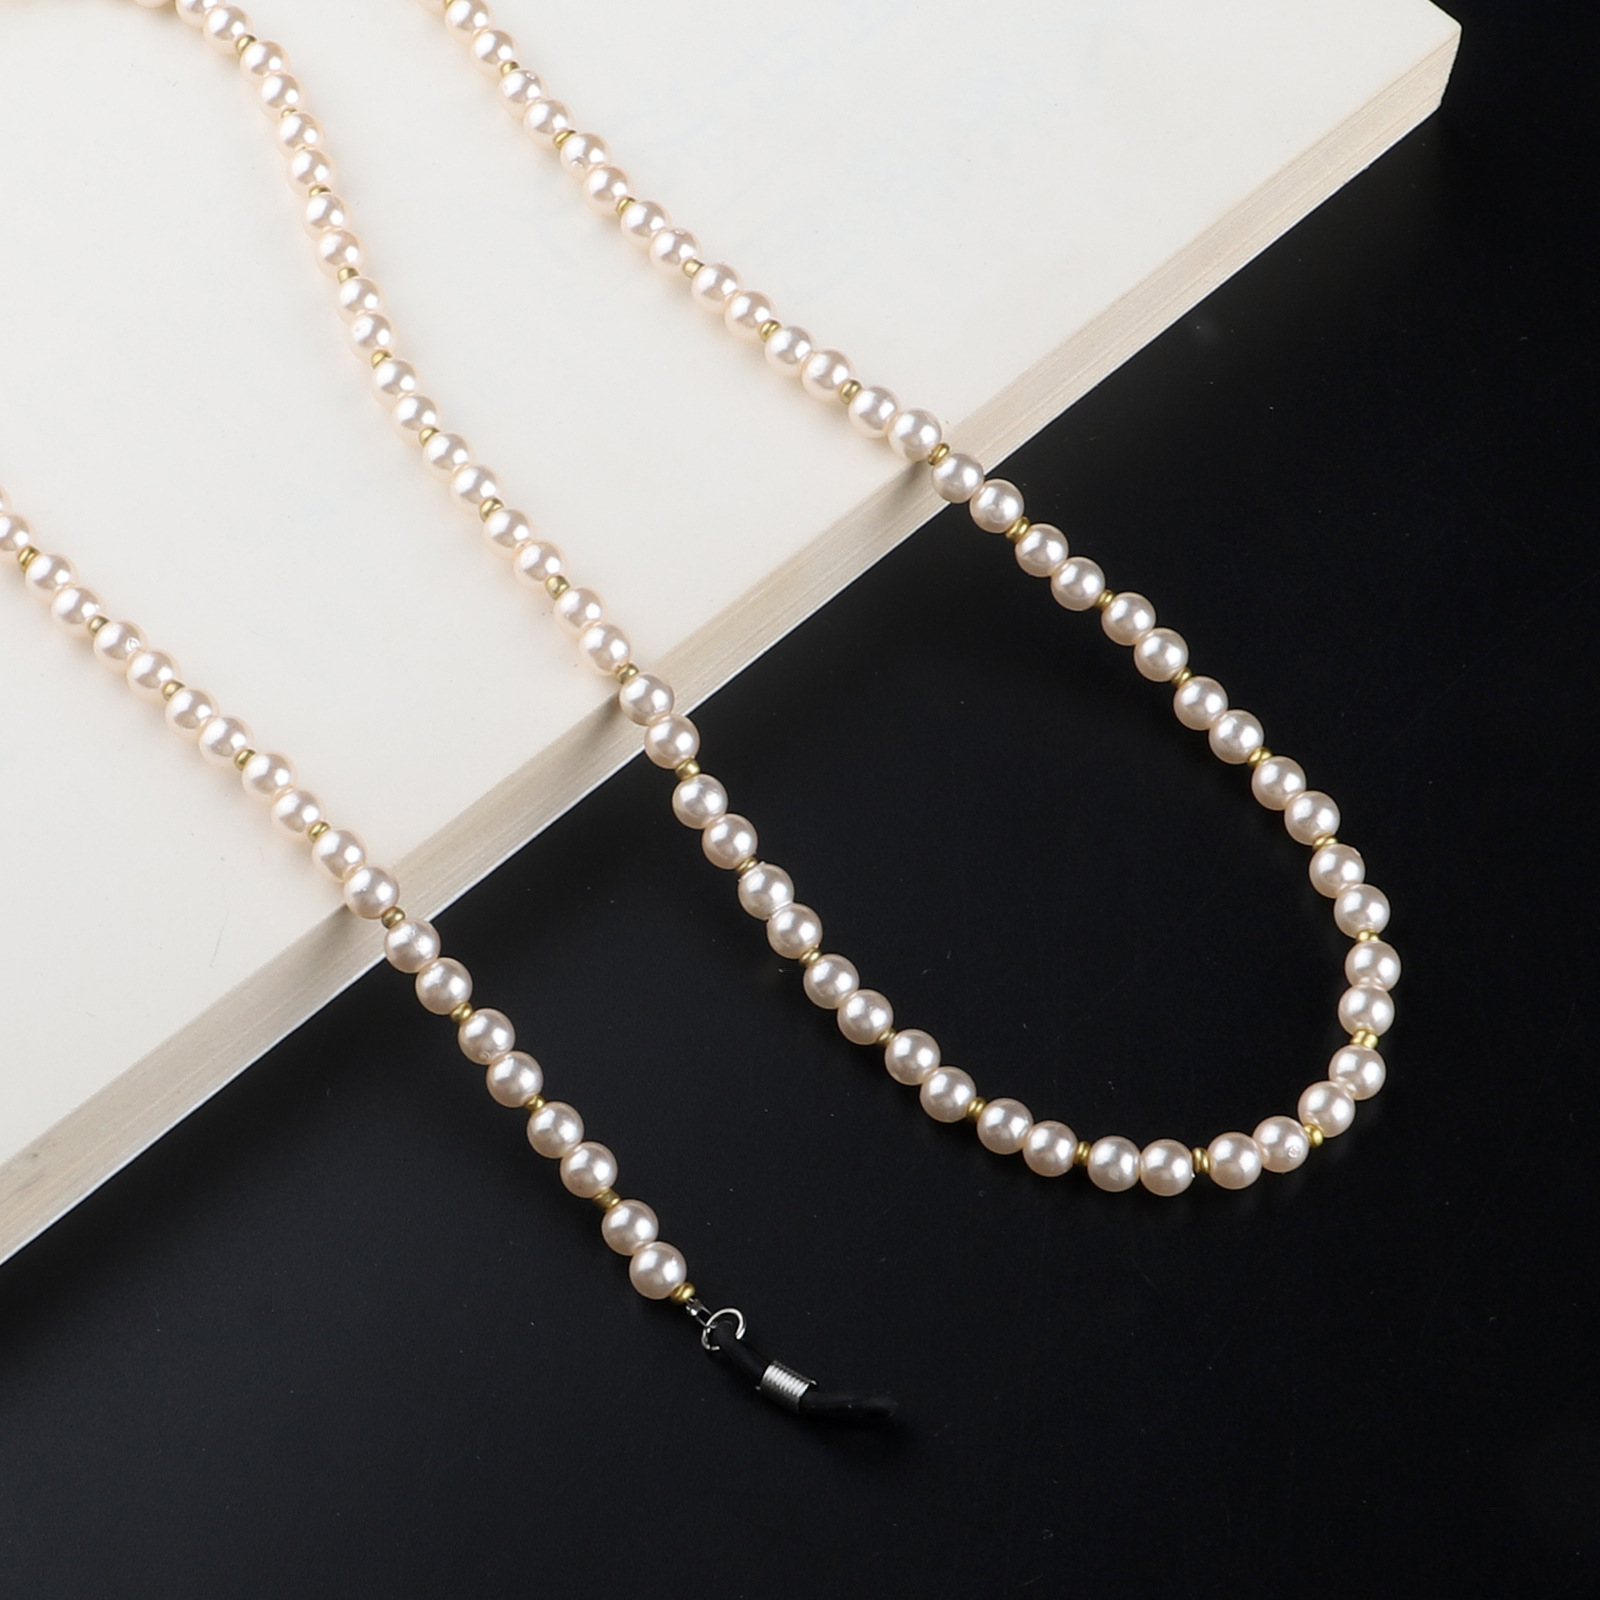 New 2020 Imitation Pearl Beaded Reading Glasses Chain Neck Cord Non-slip Sunglasses Chain For Women Pearl Necklace Accessories